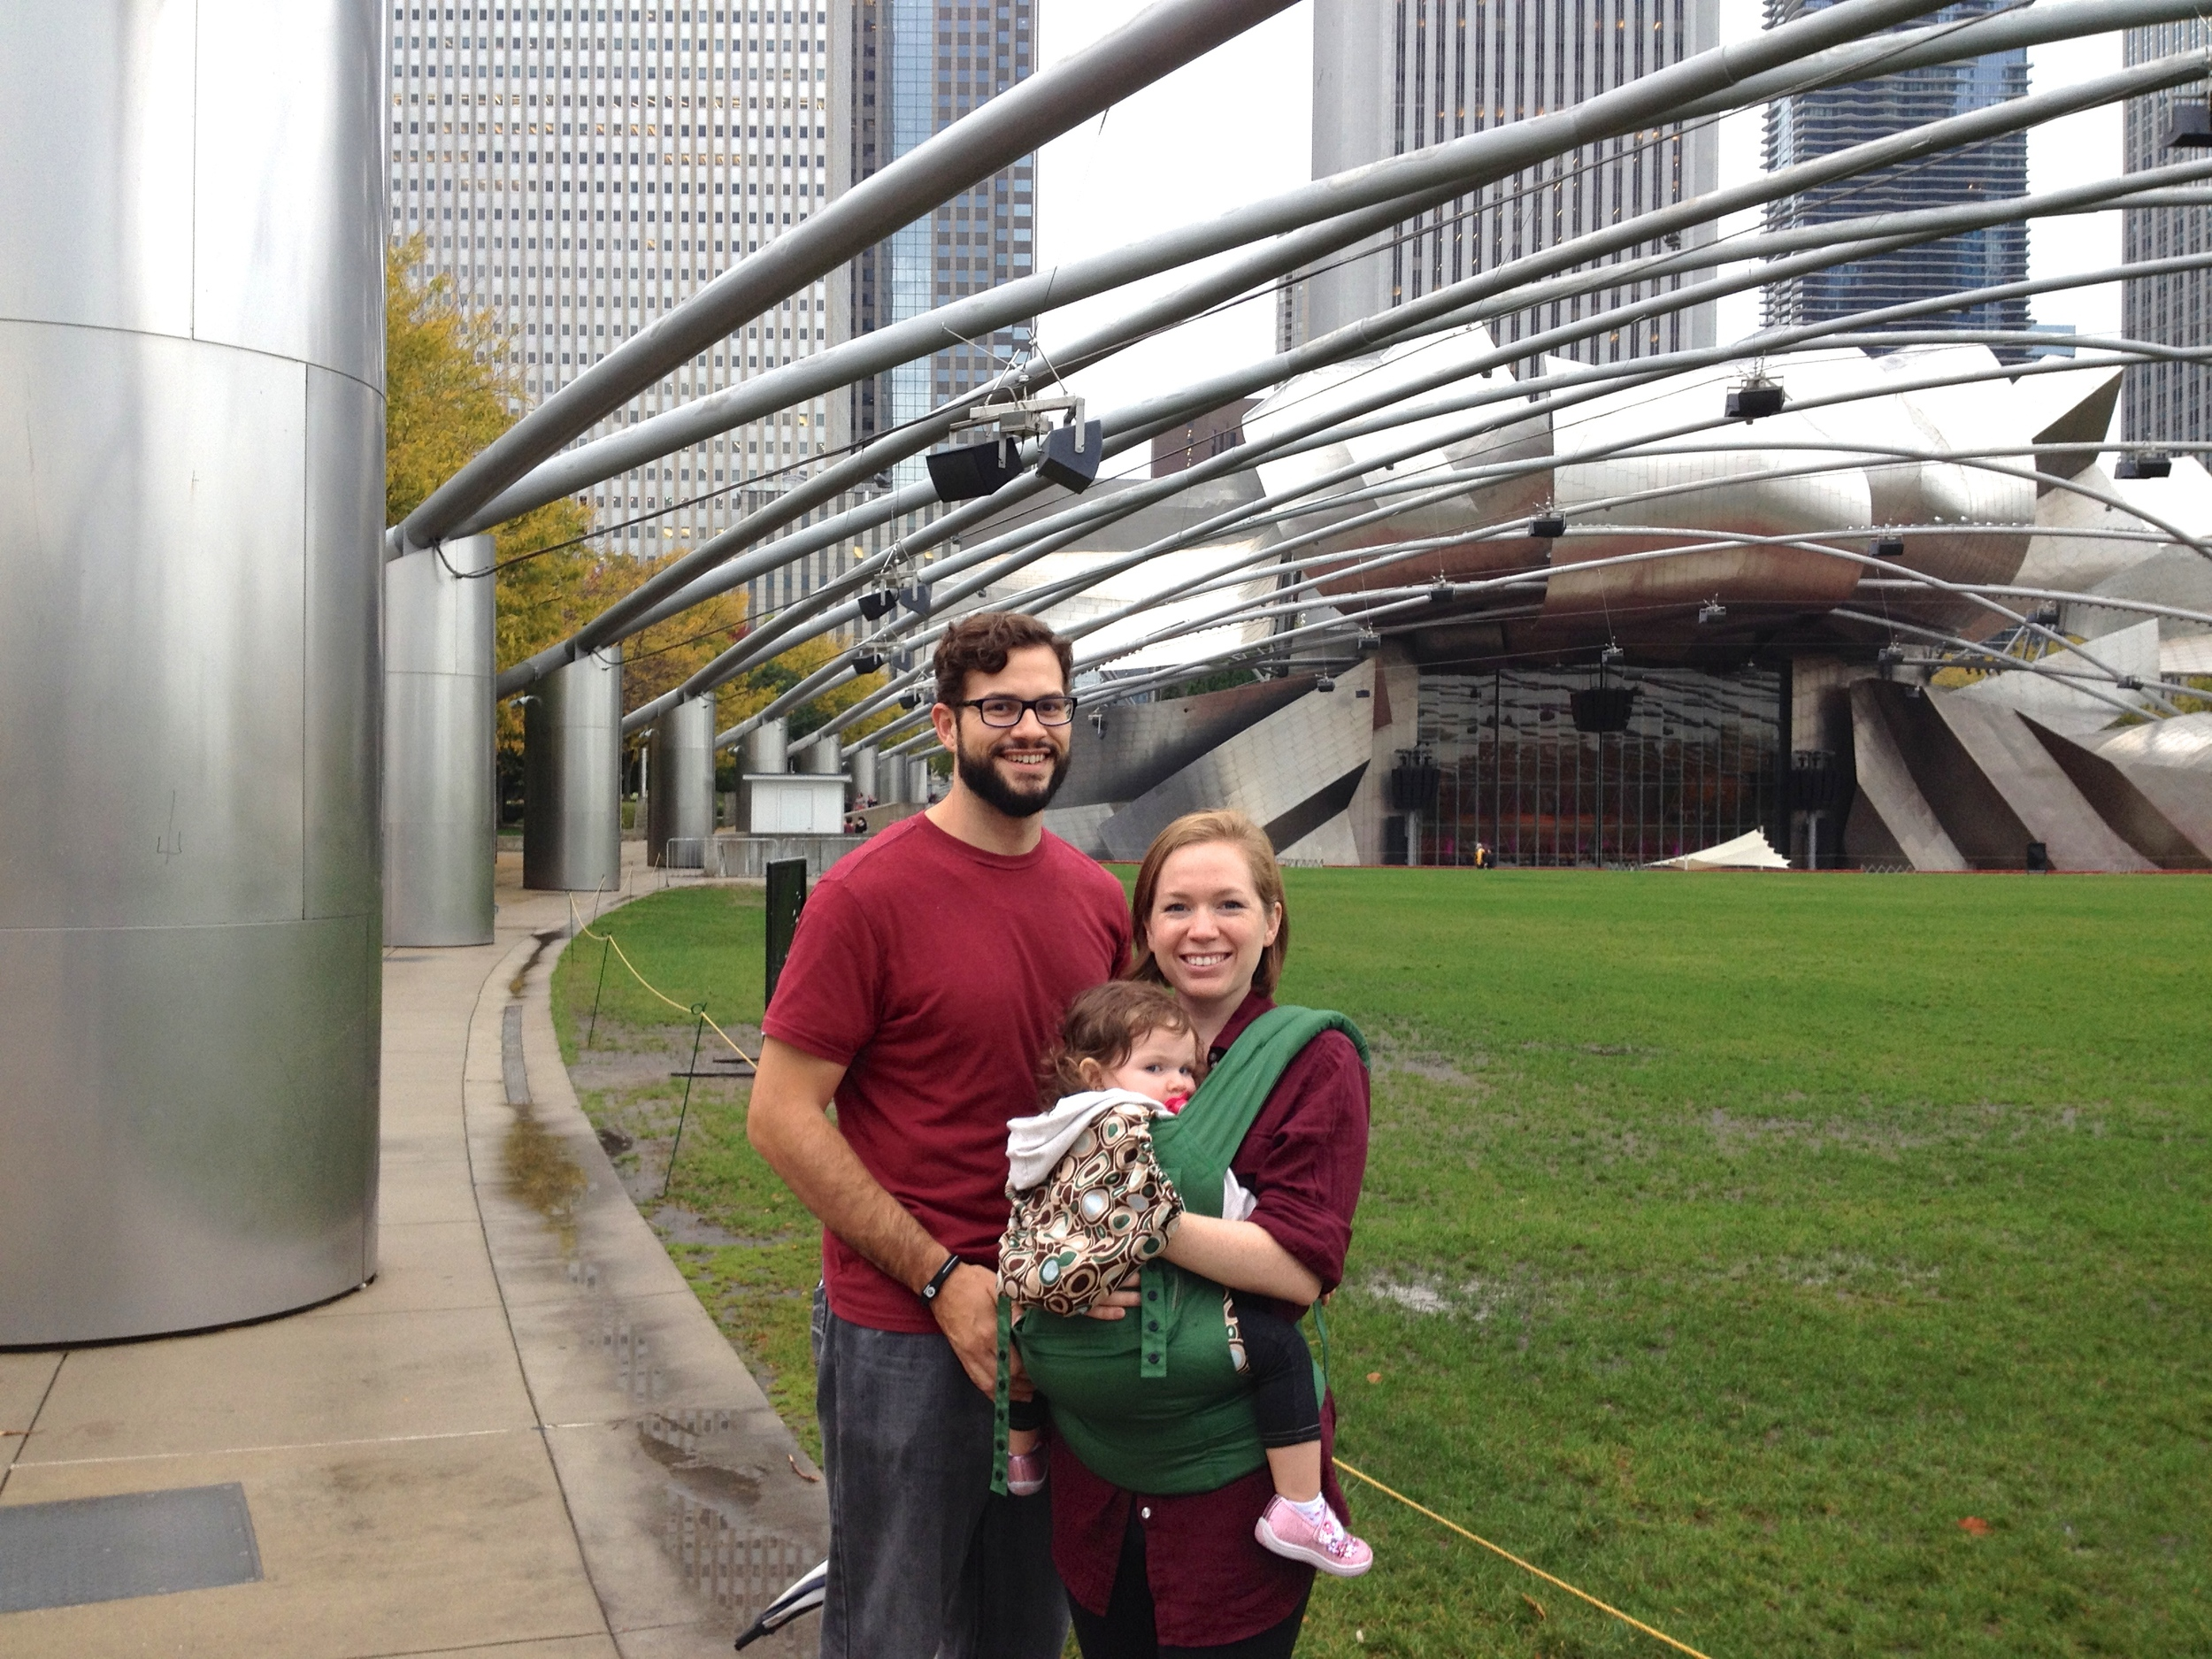 And right next door, Frank Gehry's Jay Pritzker Pavilion.